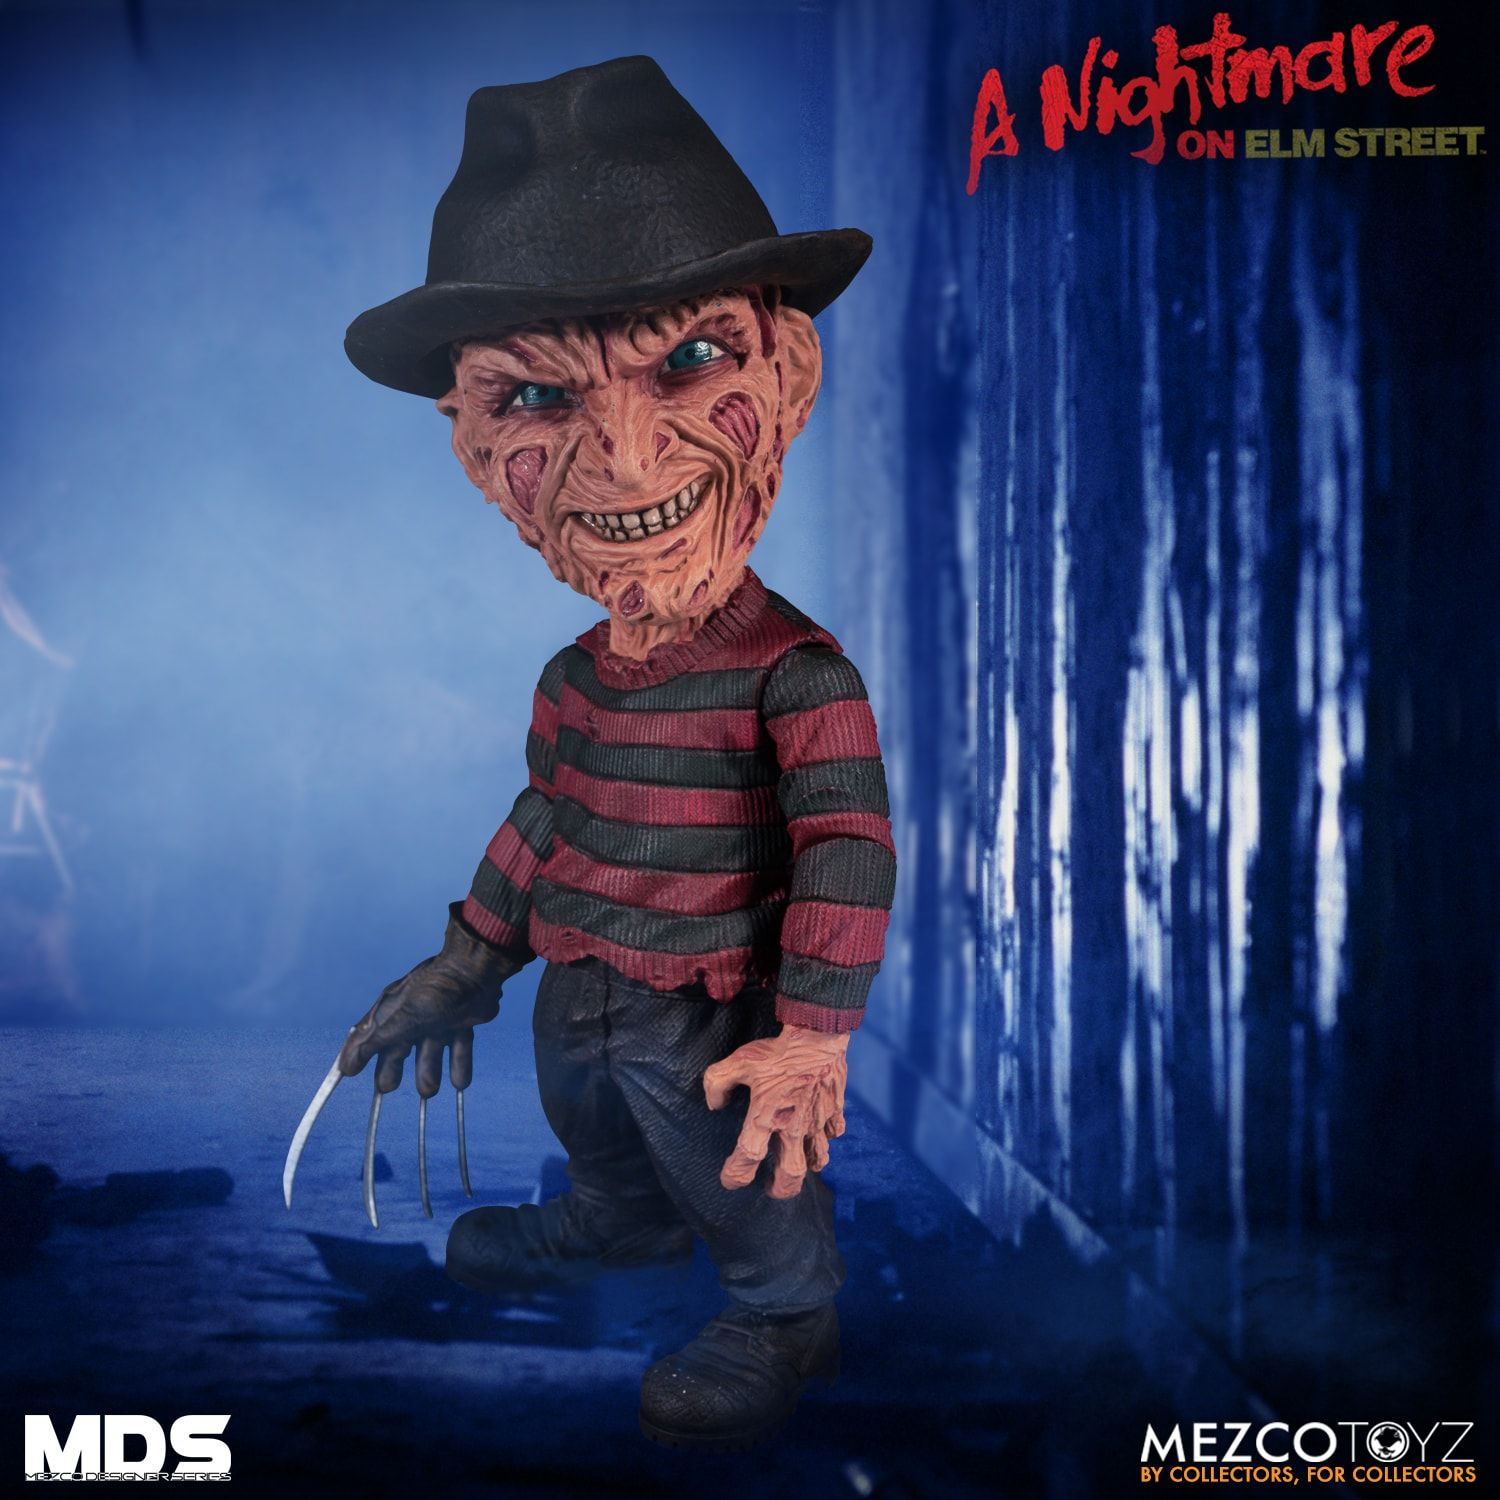 Mezco Nightmare on Elm Street Freddy Krueger